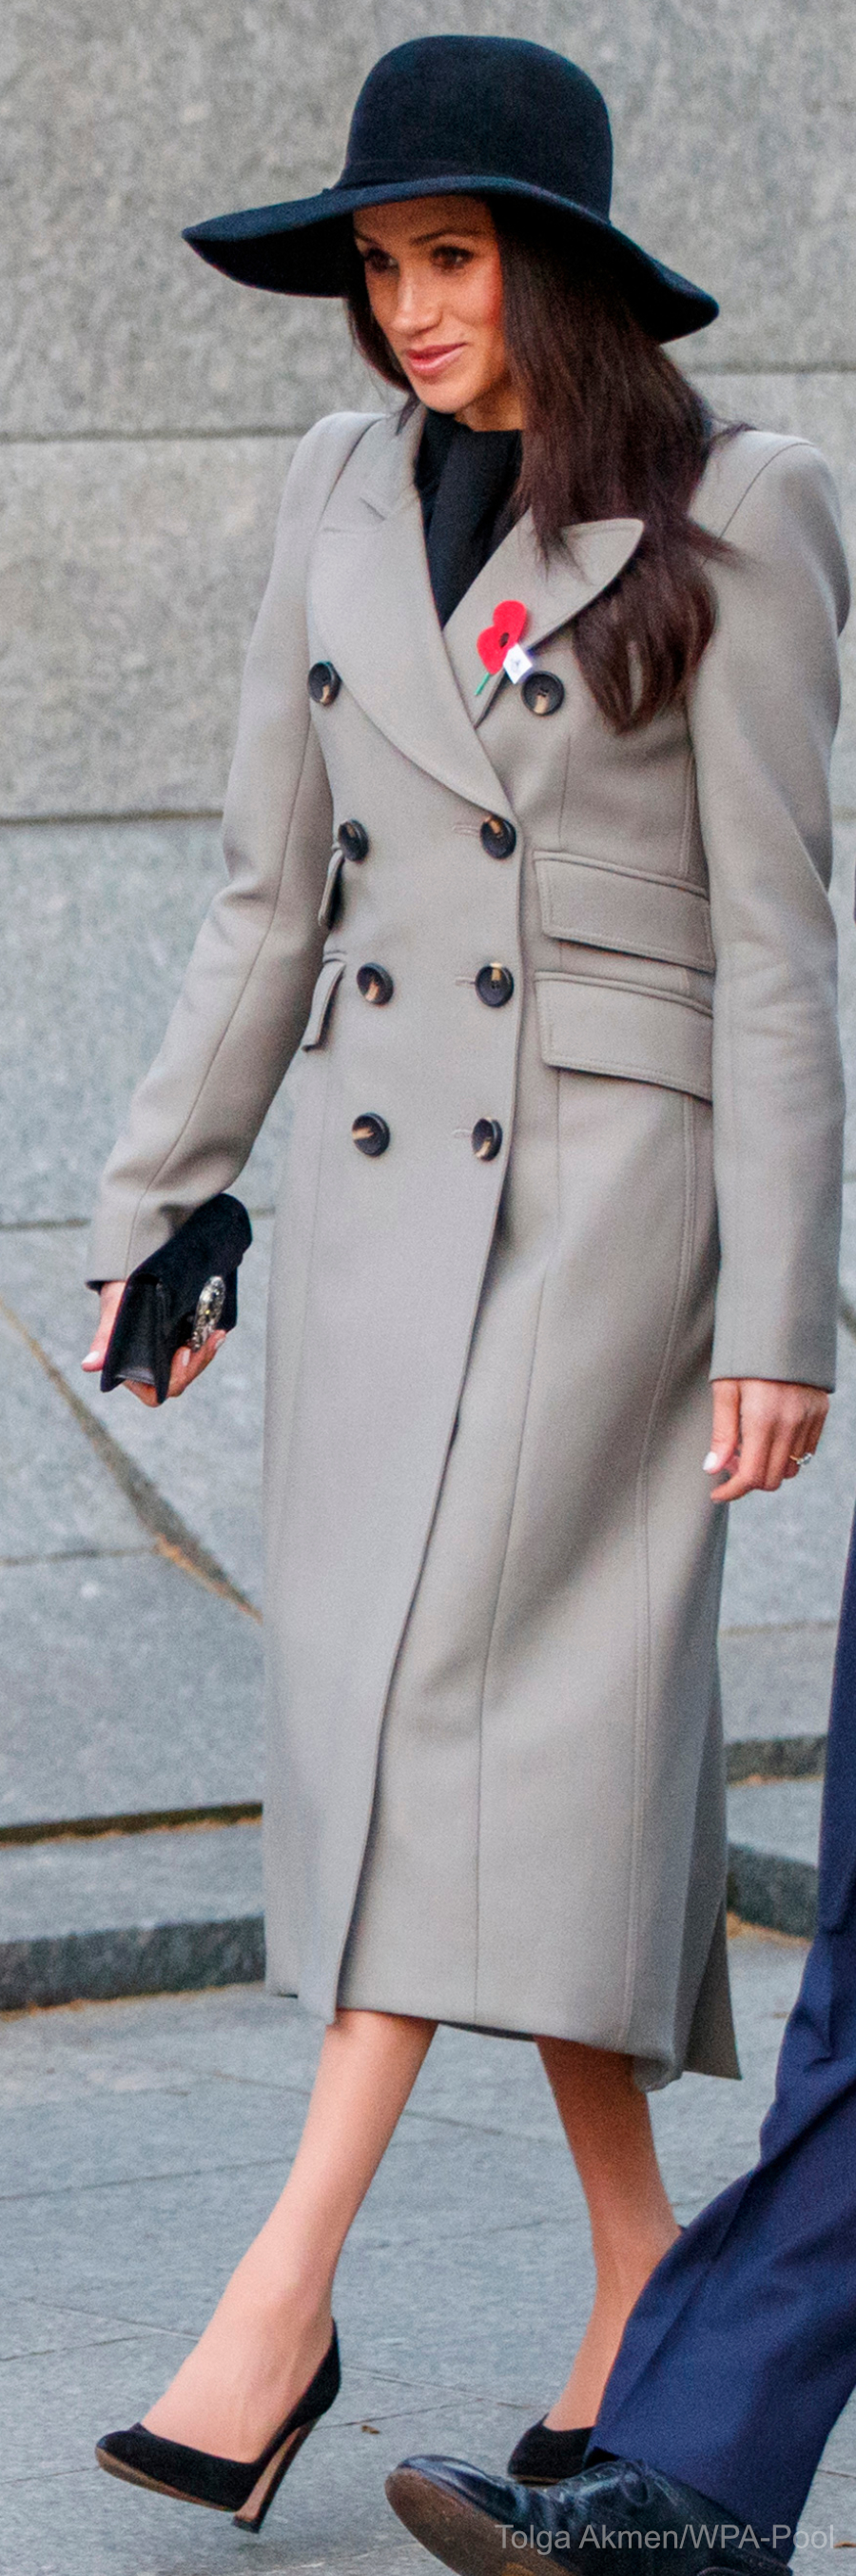 Meghan Markle's outfit at the Anzac Day dawn service